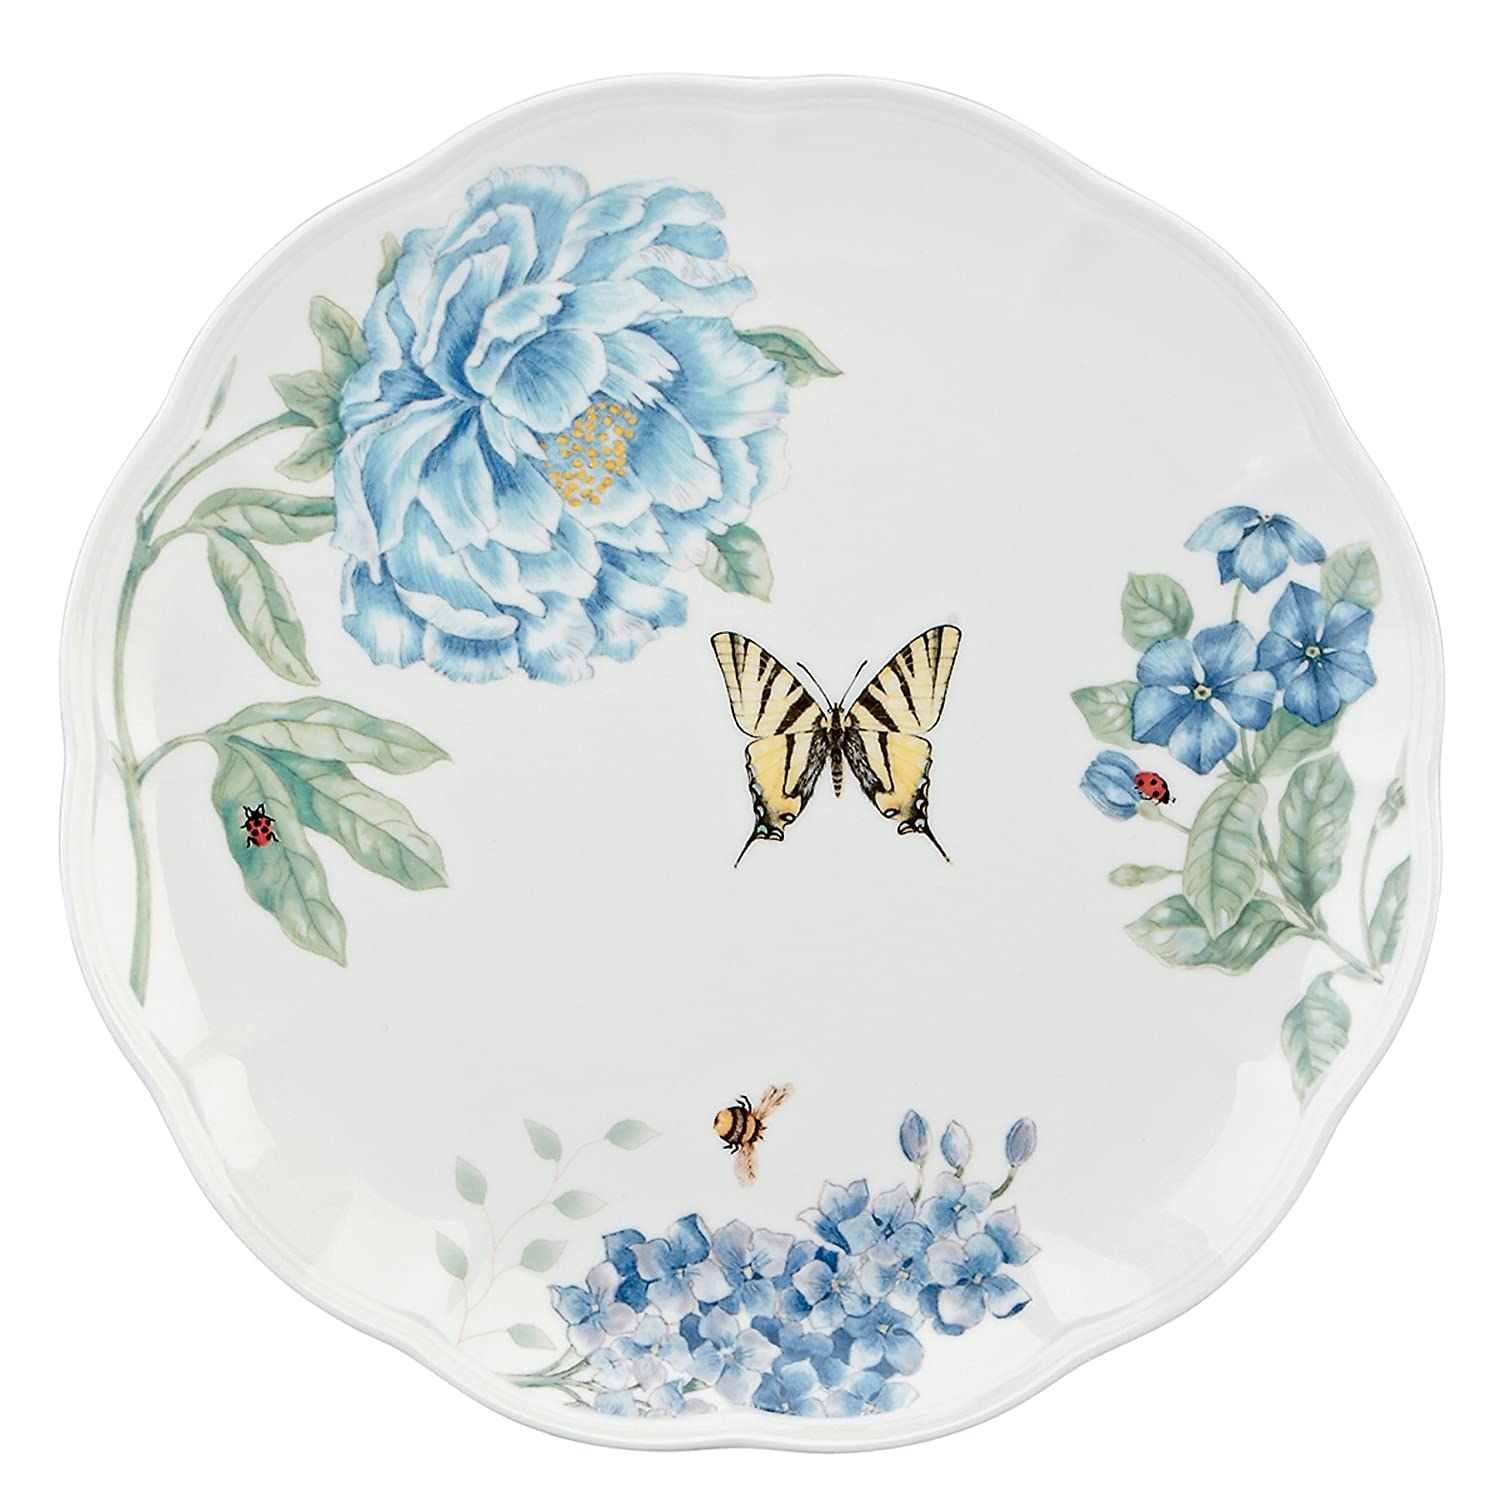 sc 1 st  Amazon.com & Amazon.com: Lenox Butterfly Meadow Blue Dinner Plate: Kitchen \u0026 Dining